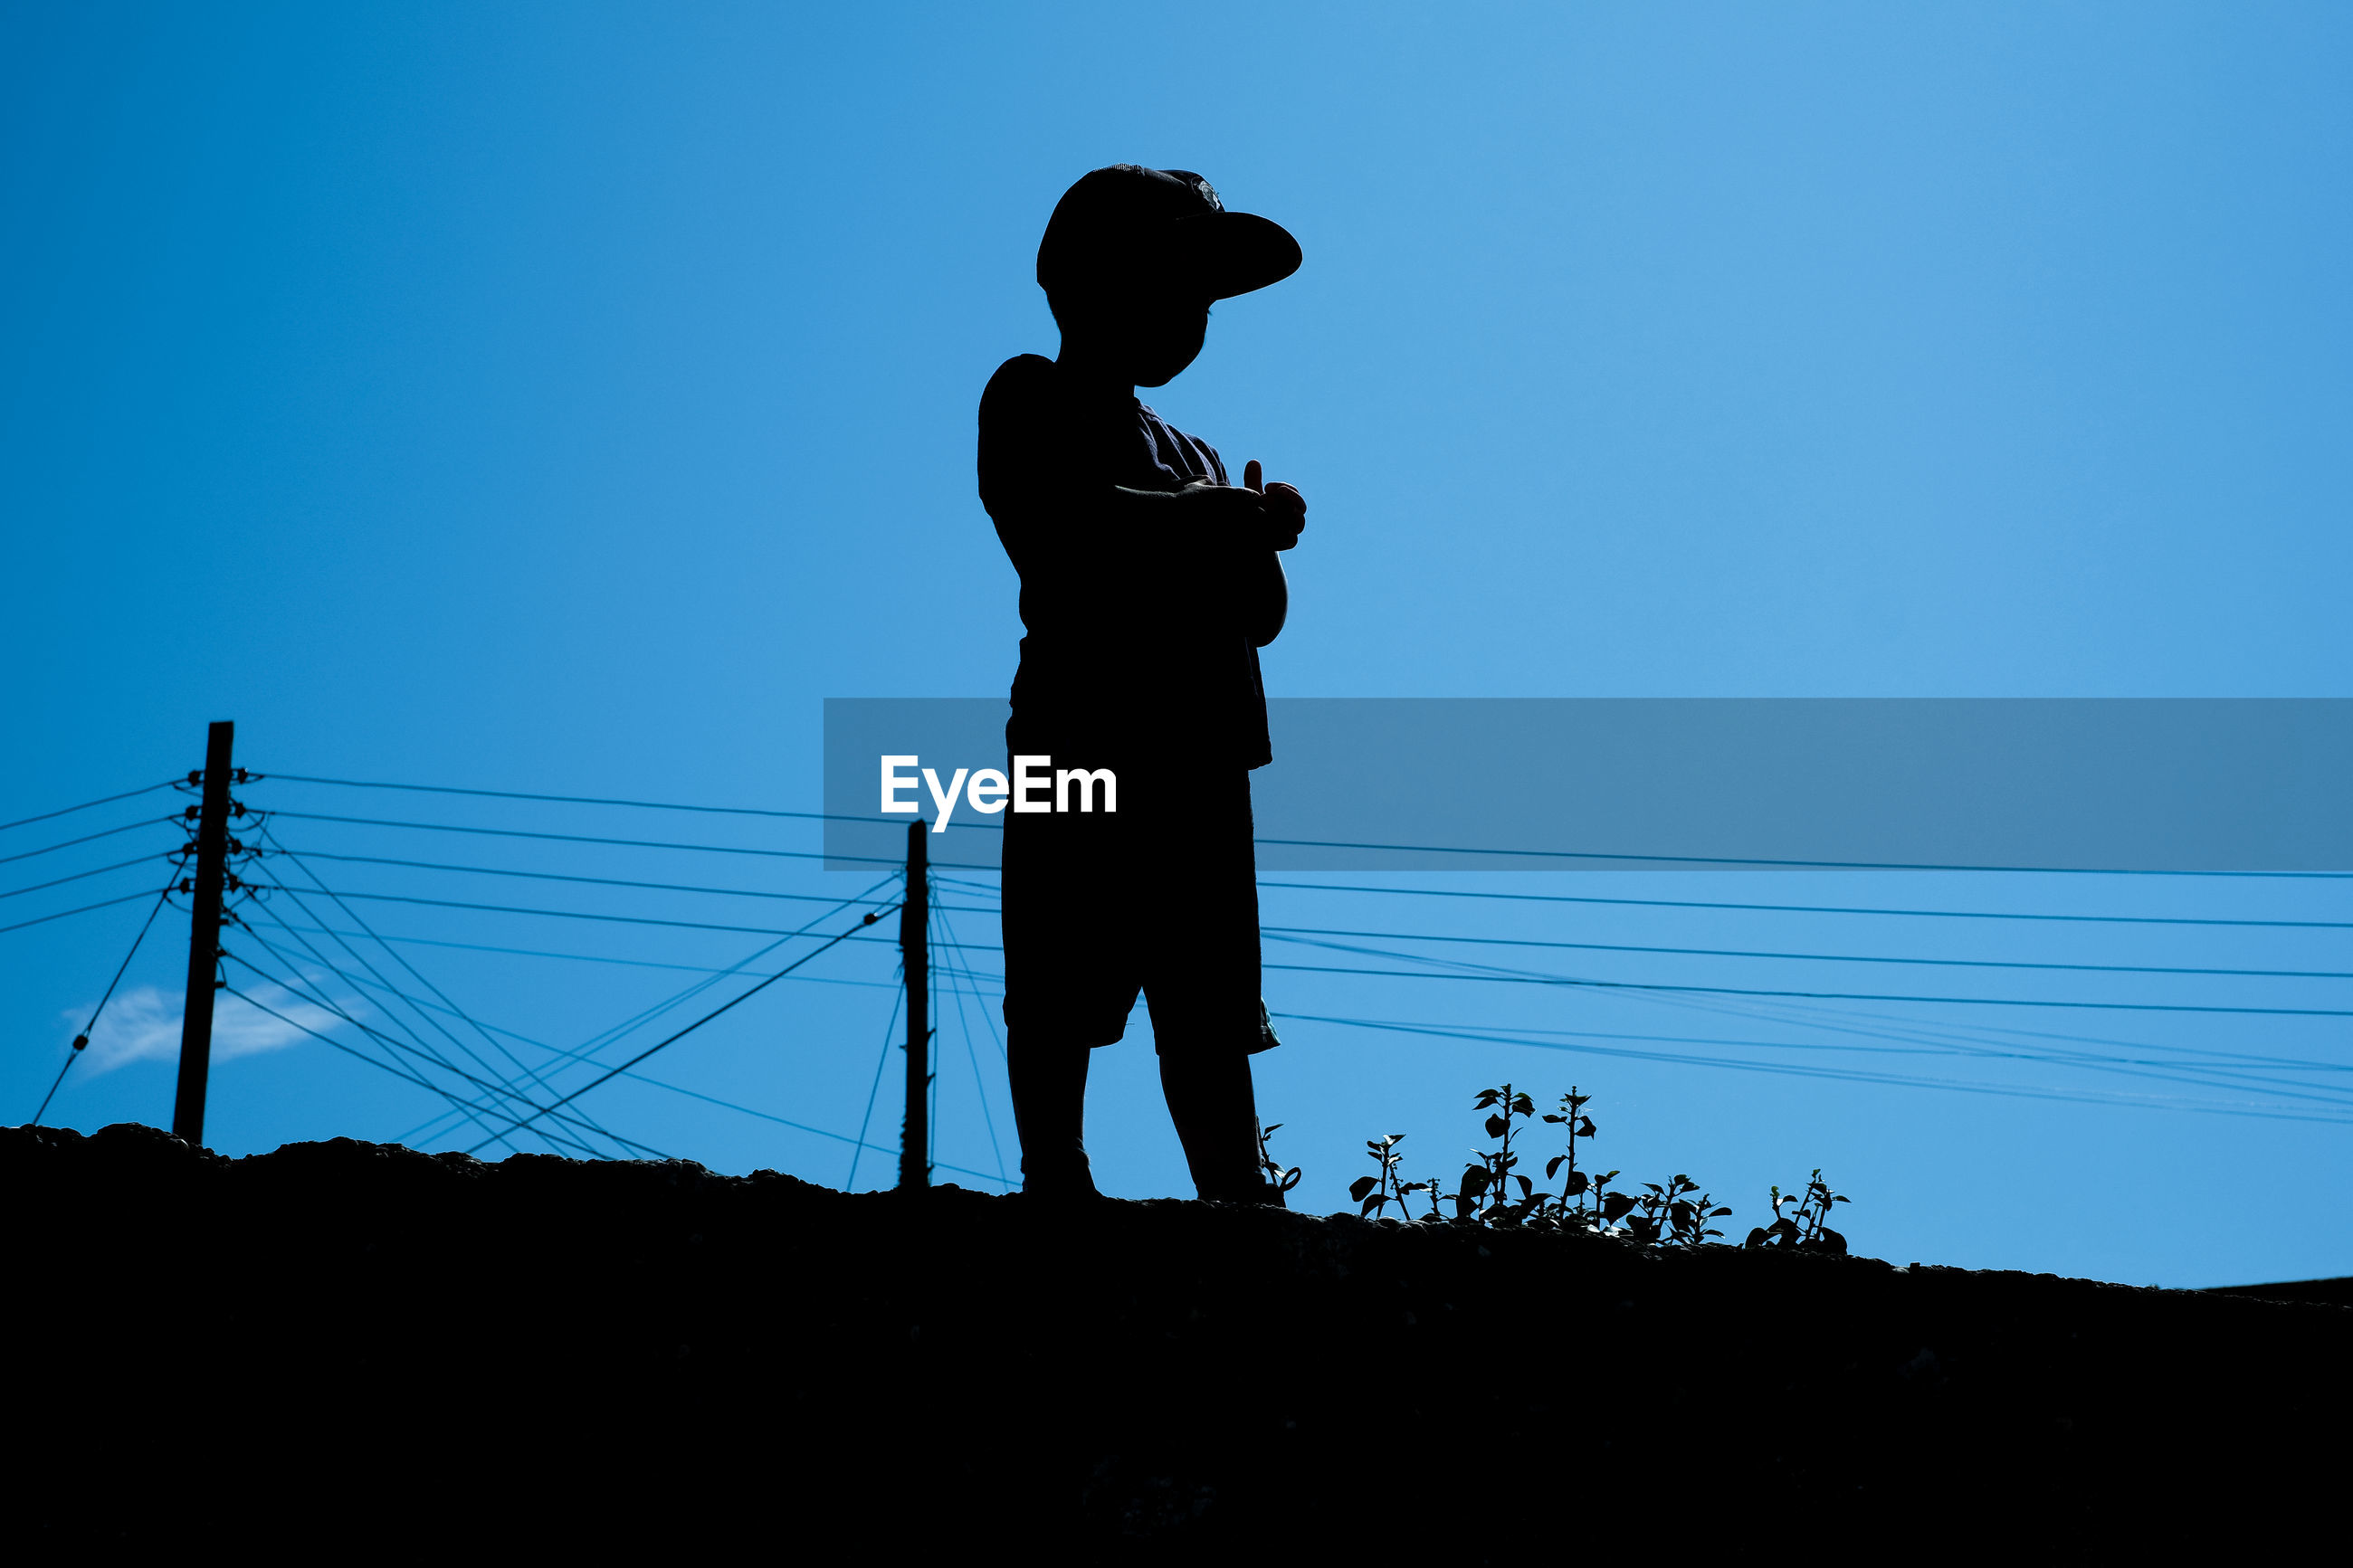 Low angle view of silhouette boy standing against clear blue sky